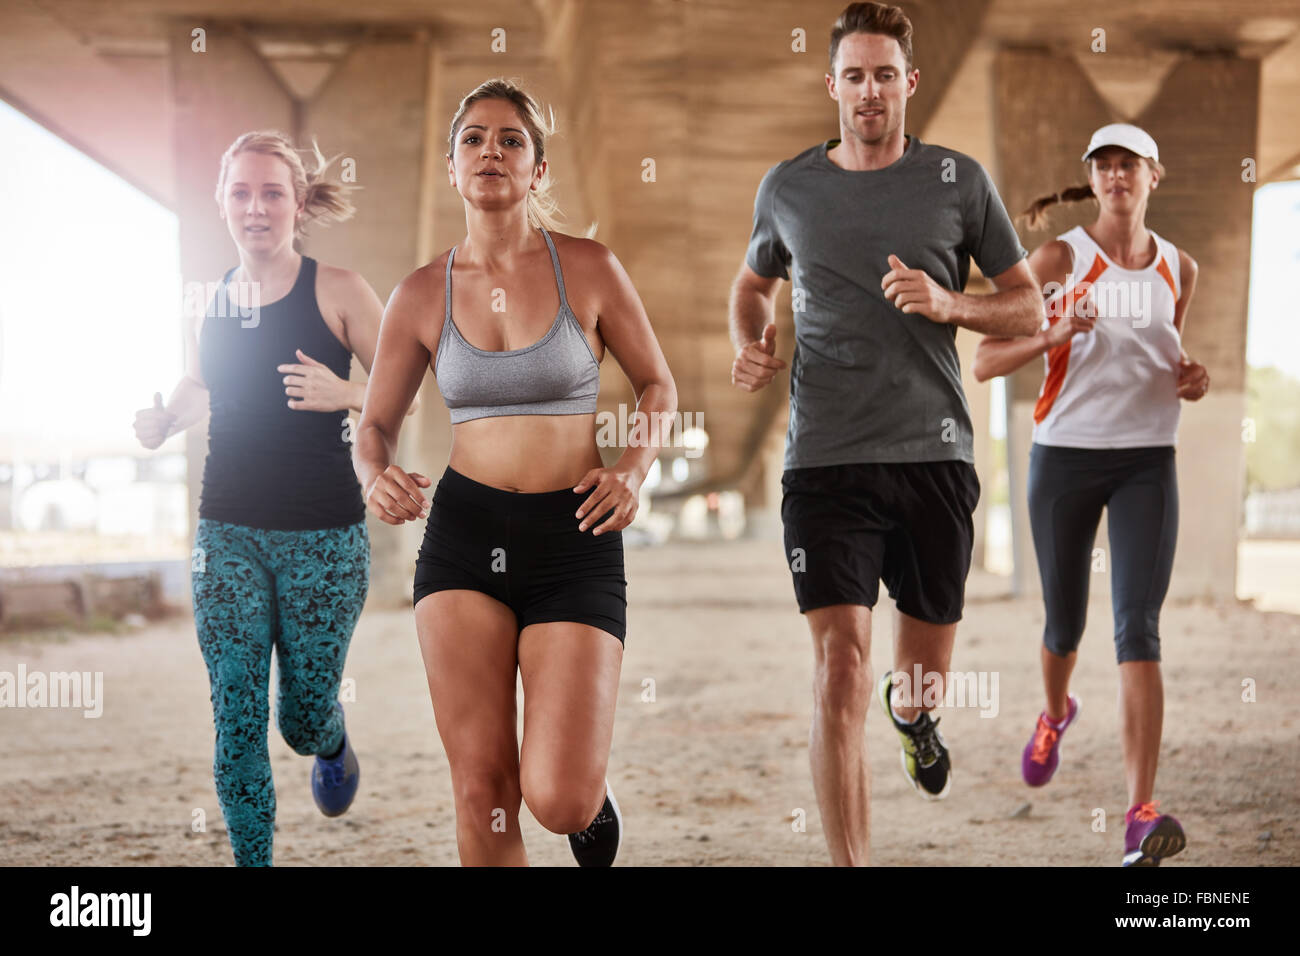 Healthy young people running together in morning under a bridge.. Runners training together. - Stock Image